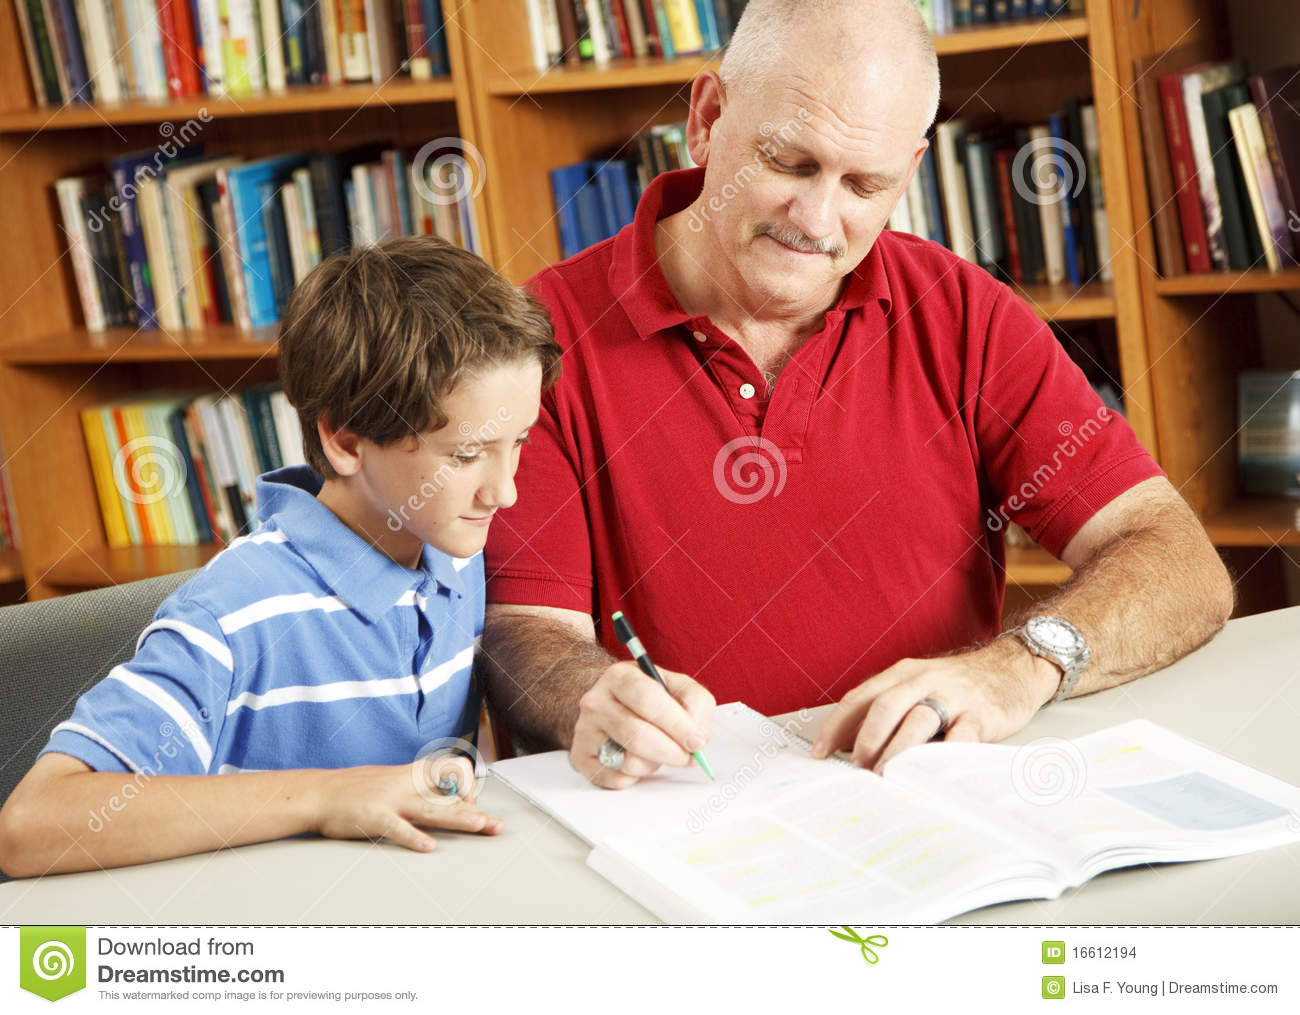 Dads homework help perfect paper for you!